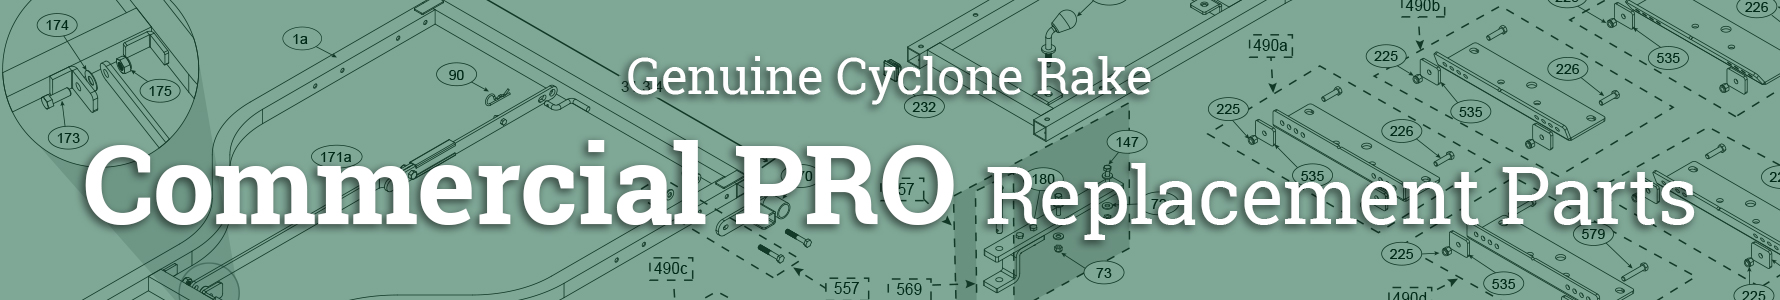 Cyclone Rake Parts for the Commercial PRO